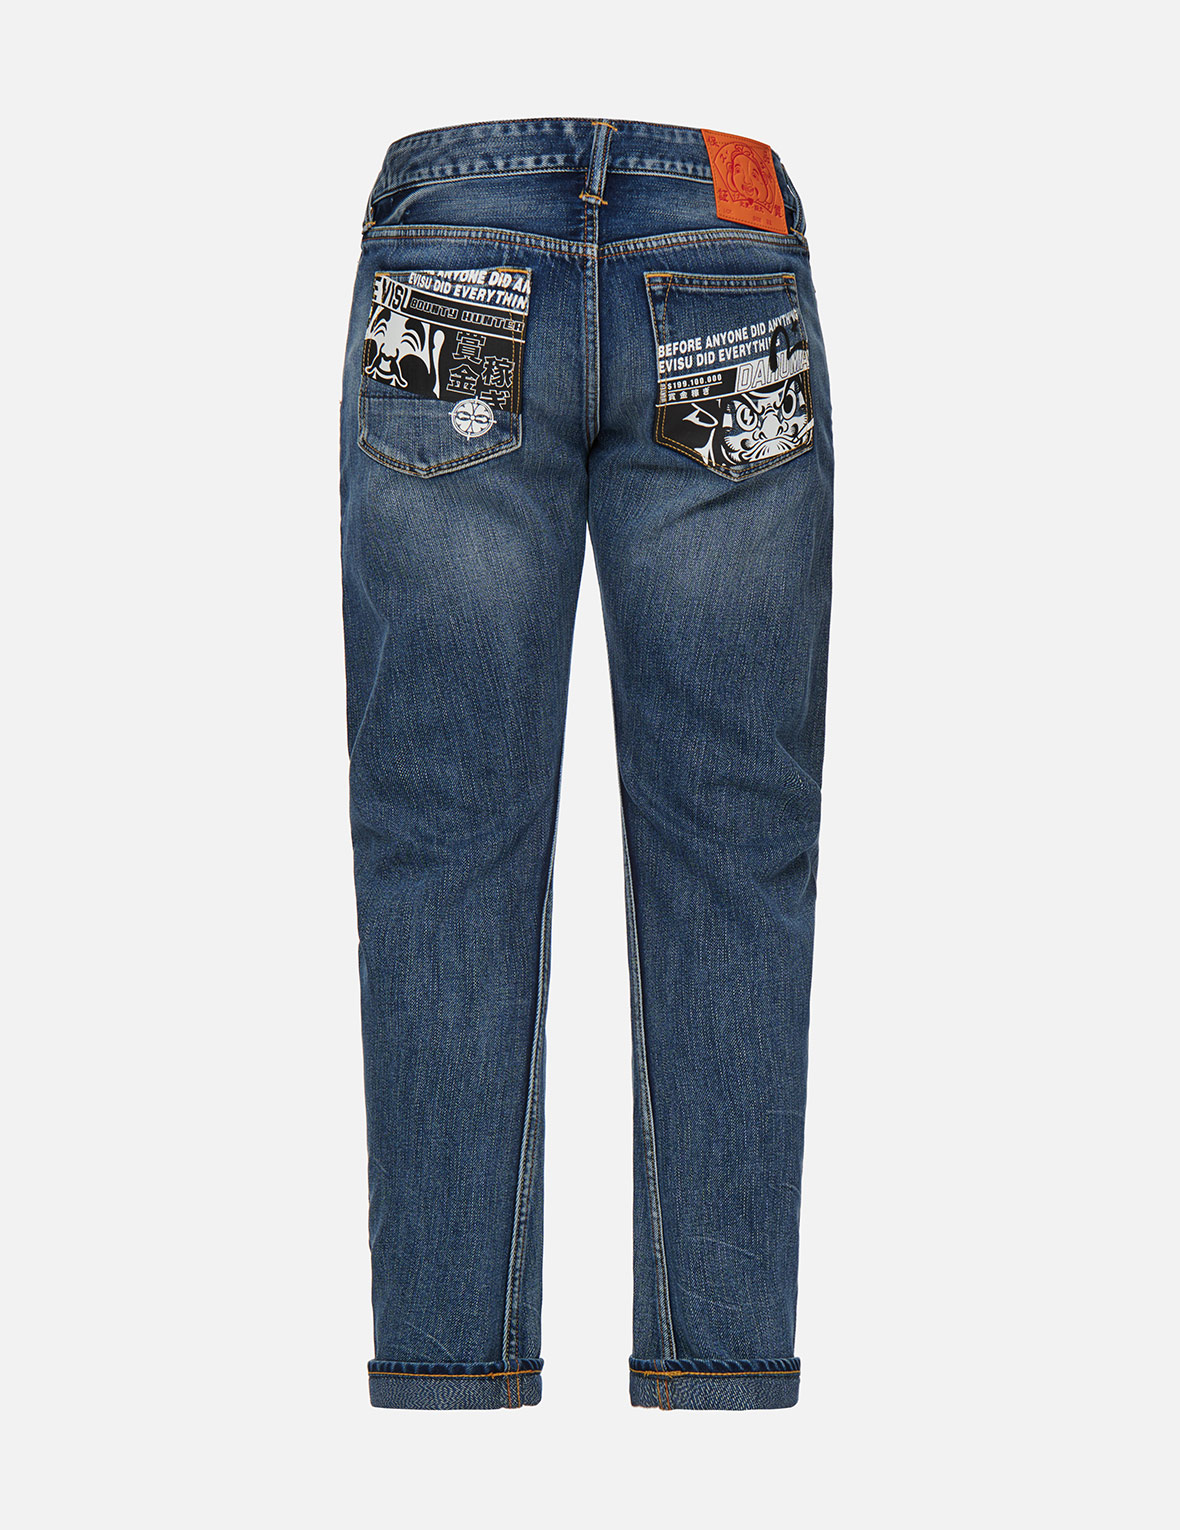 Godhead and Daruma 3D Fit Jeans